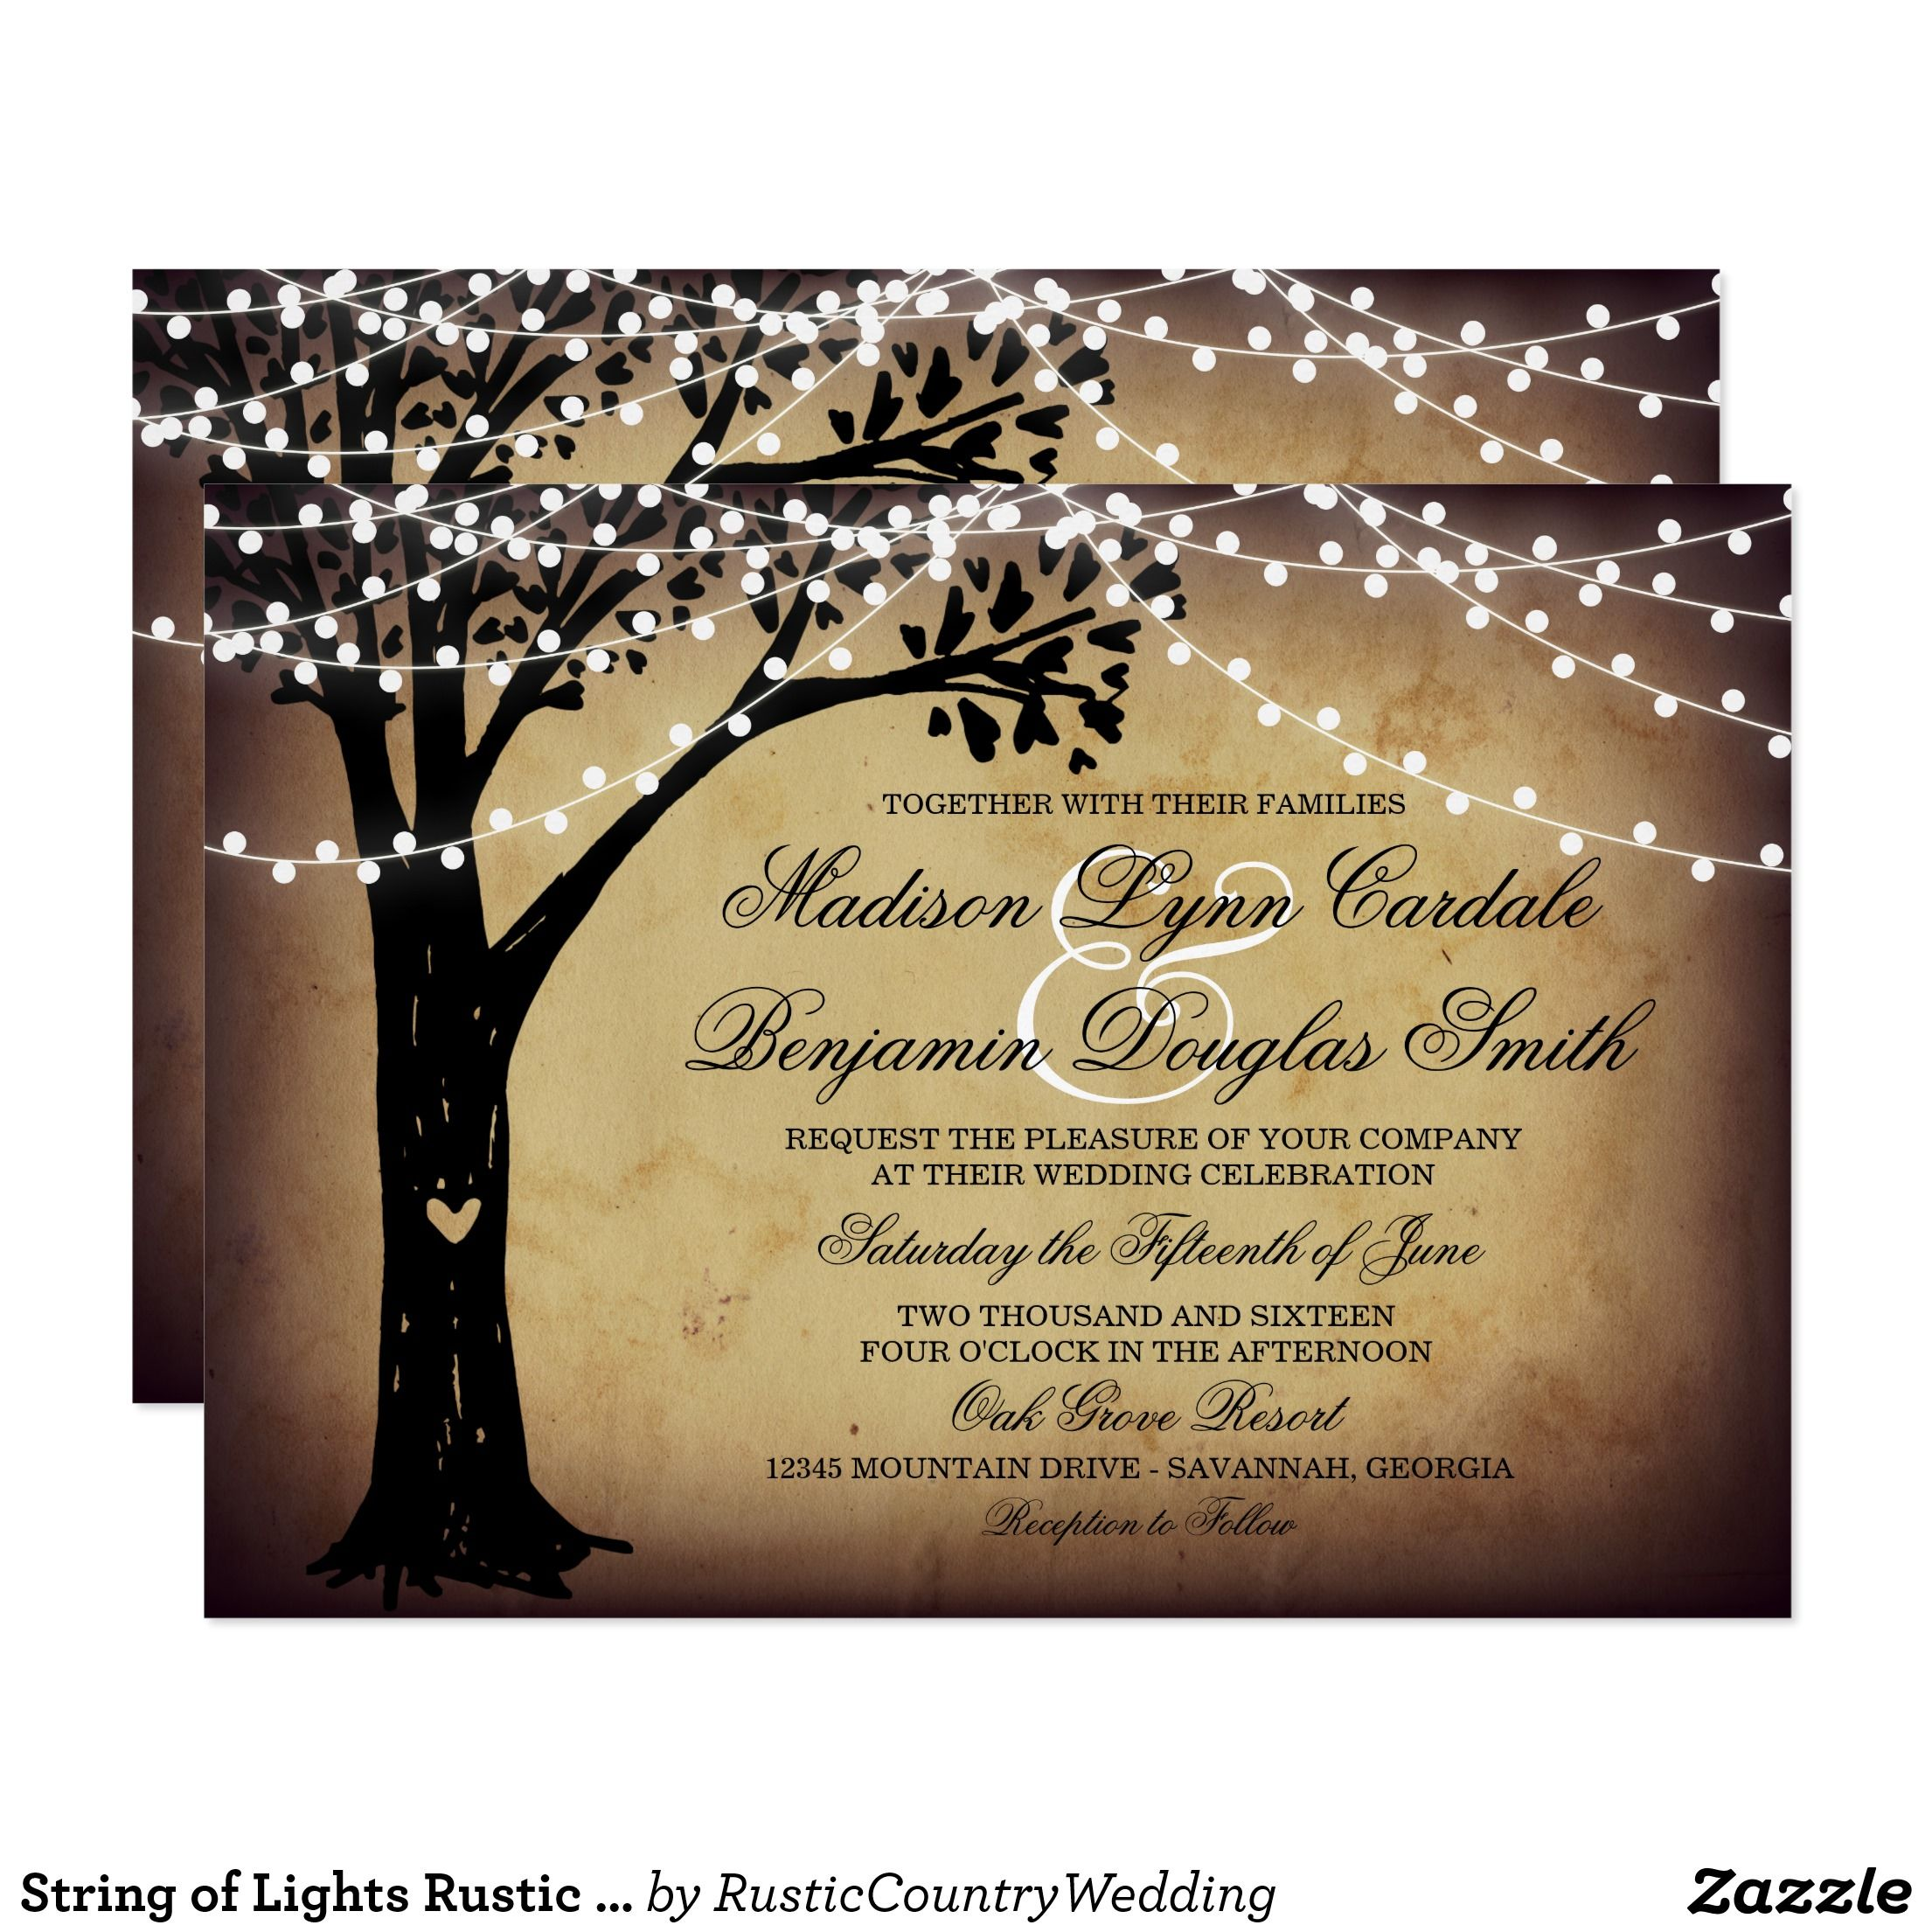 String of Lights Rustic Oak Tree Wedding Invites | Oak tree wedding ...